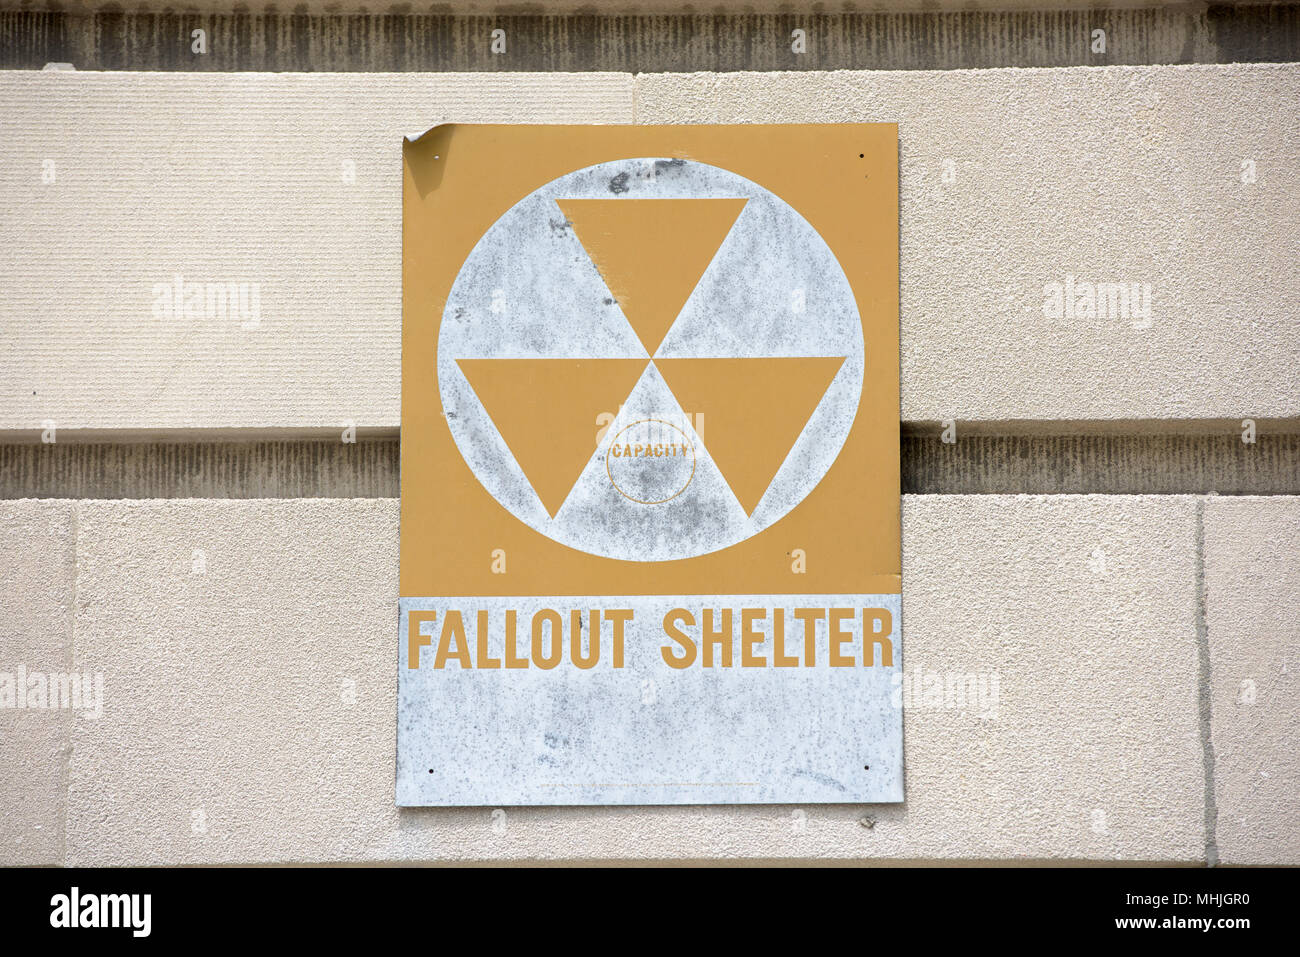 yellow fallout shelter sign on a building - Stock Photo